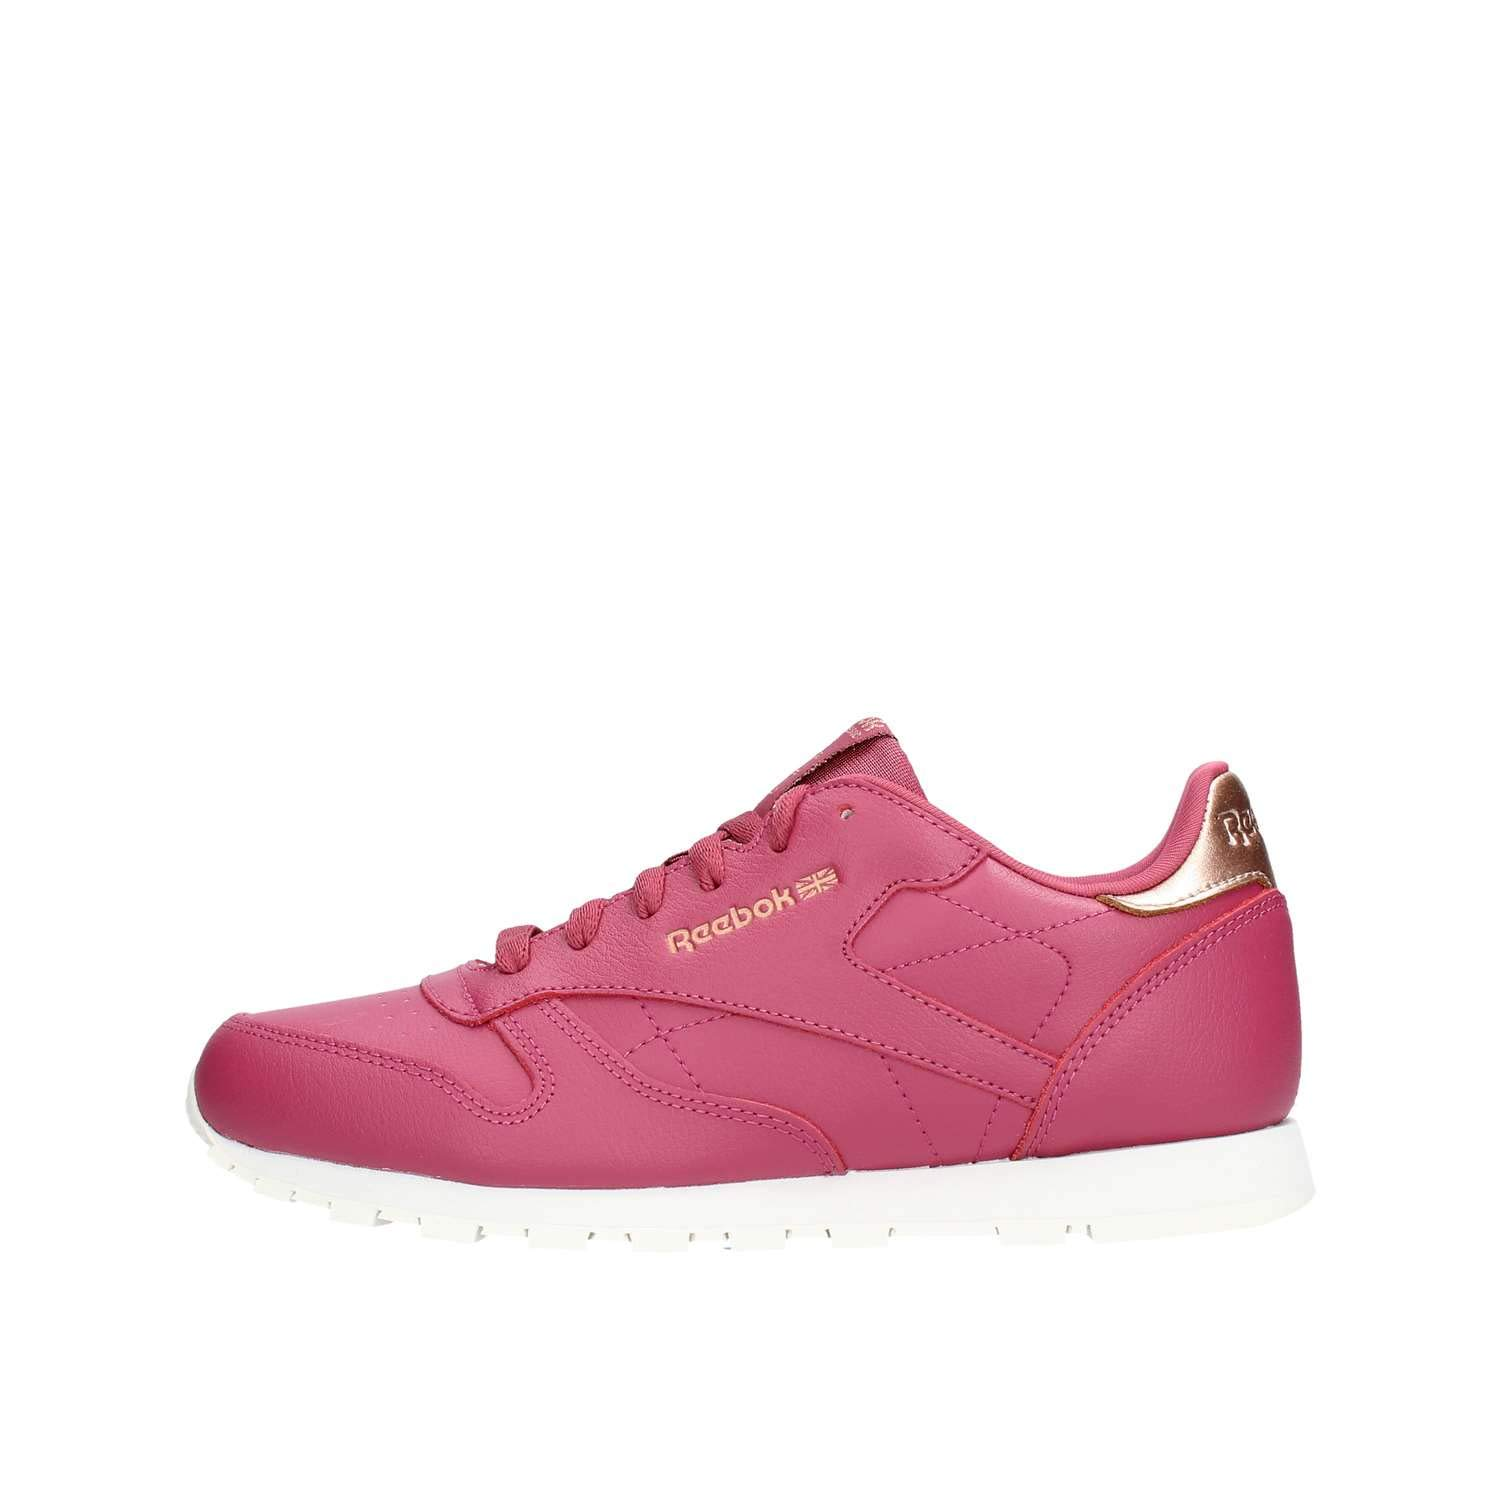 Reebok Classic Leather, Chaussures de Fitness Fille: Amazon